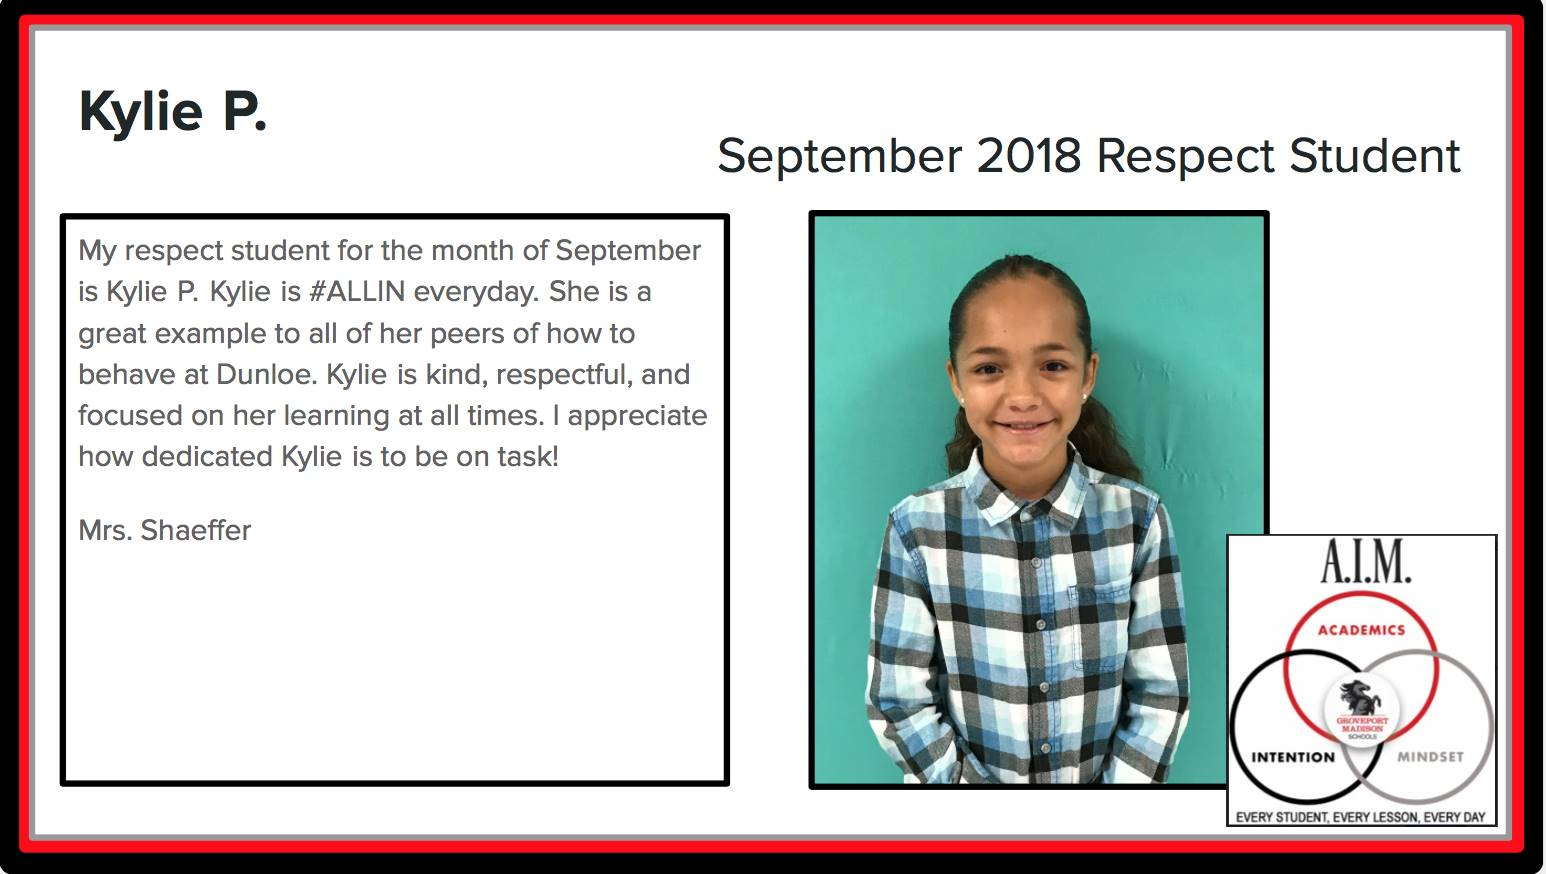 September Respect Student Kylie